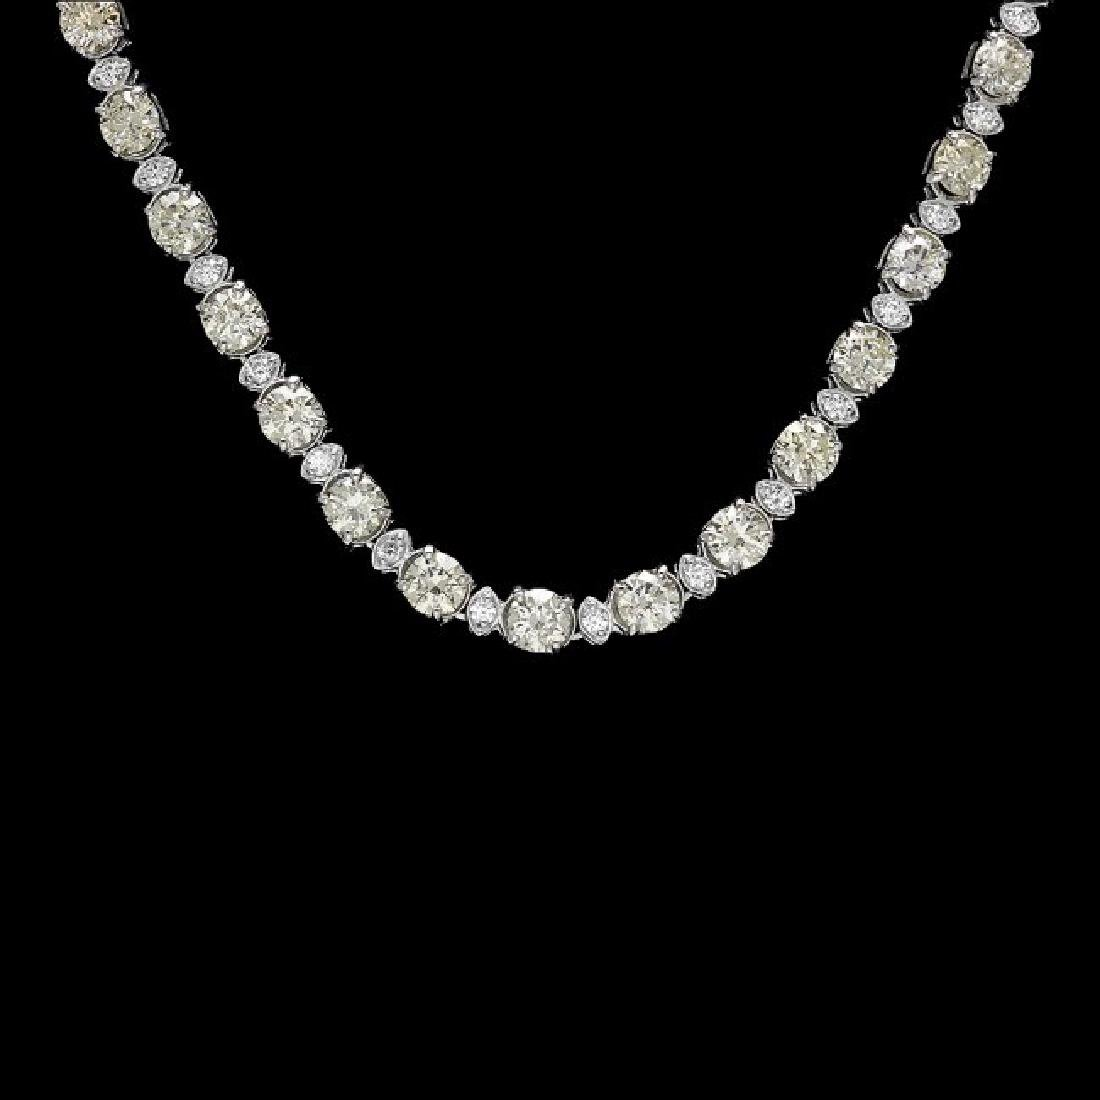 18k White Gold 17ct Diamond Necklace